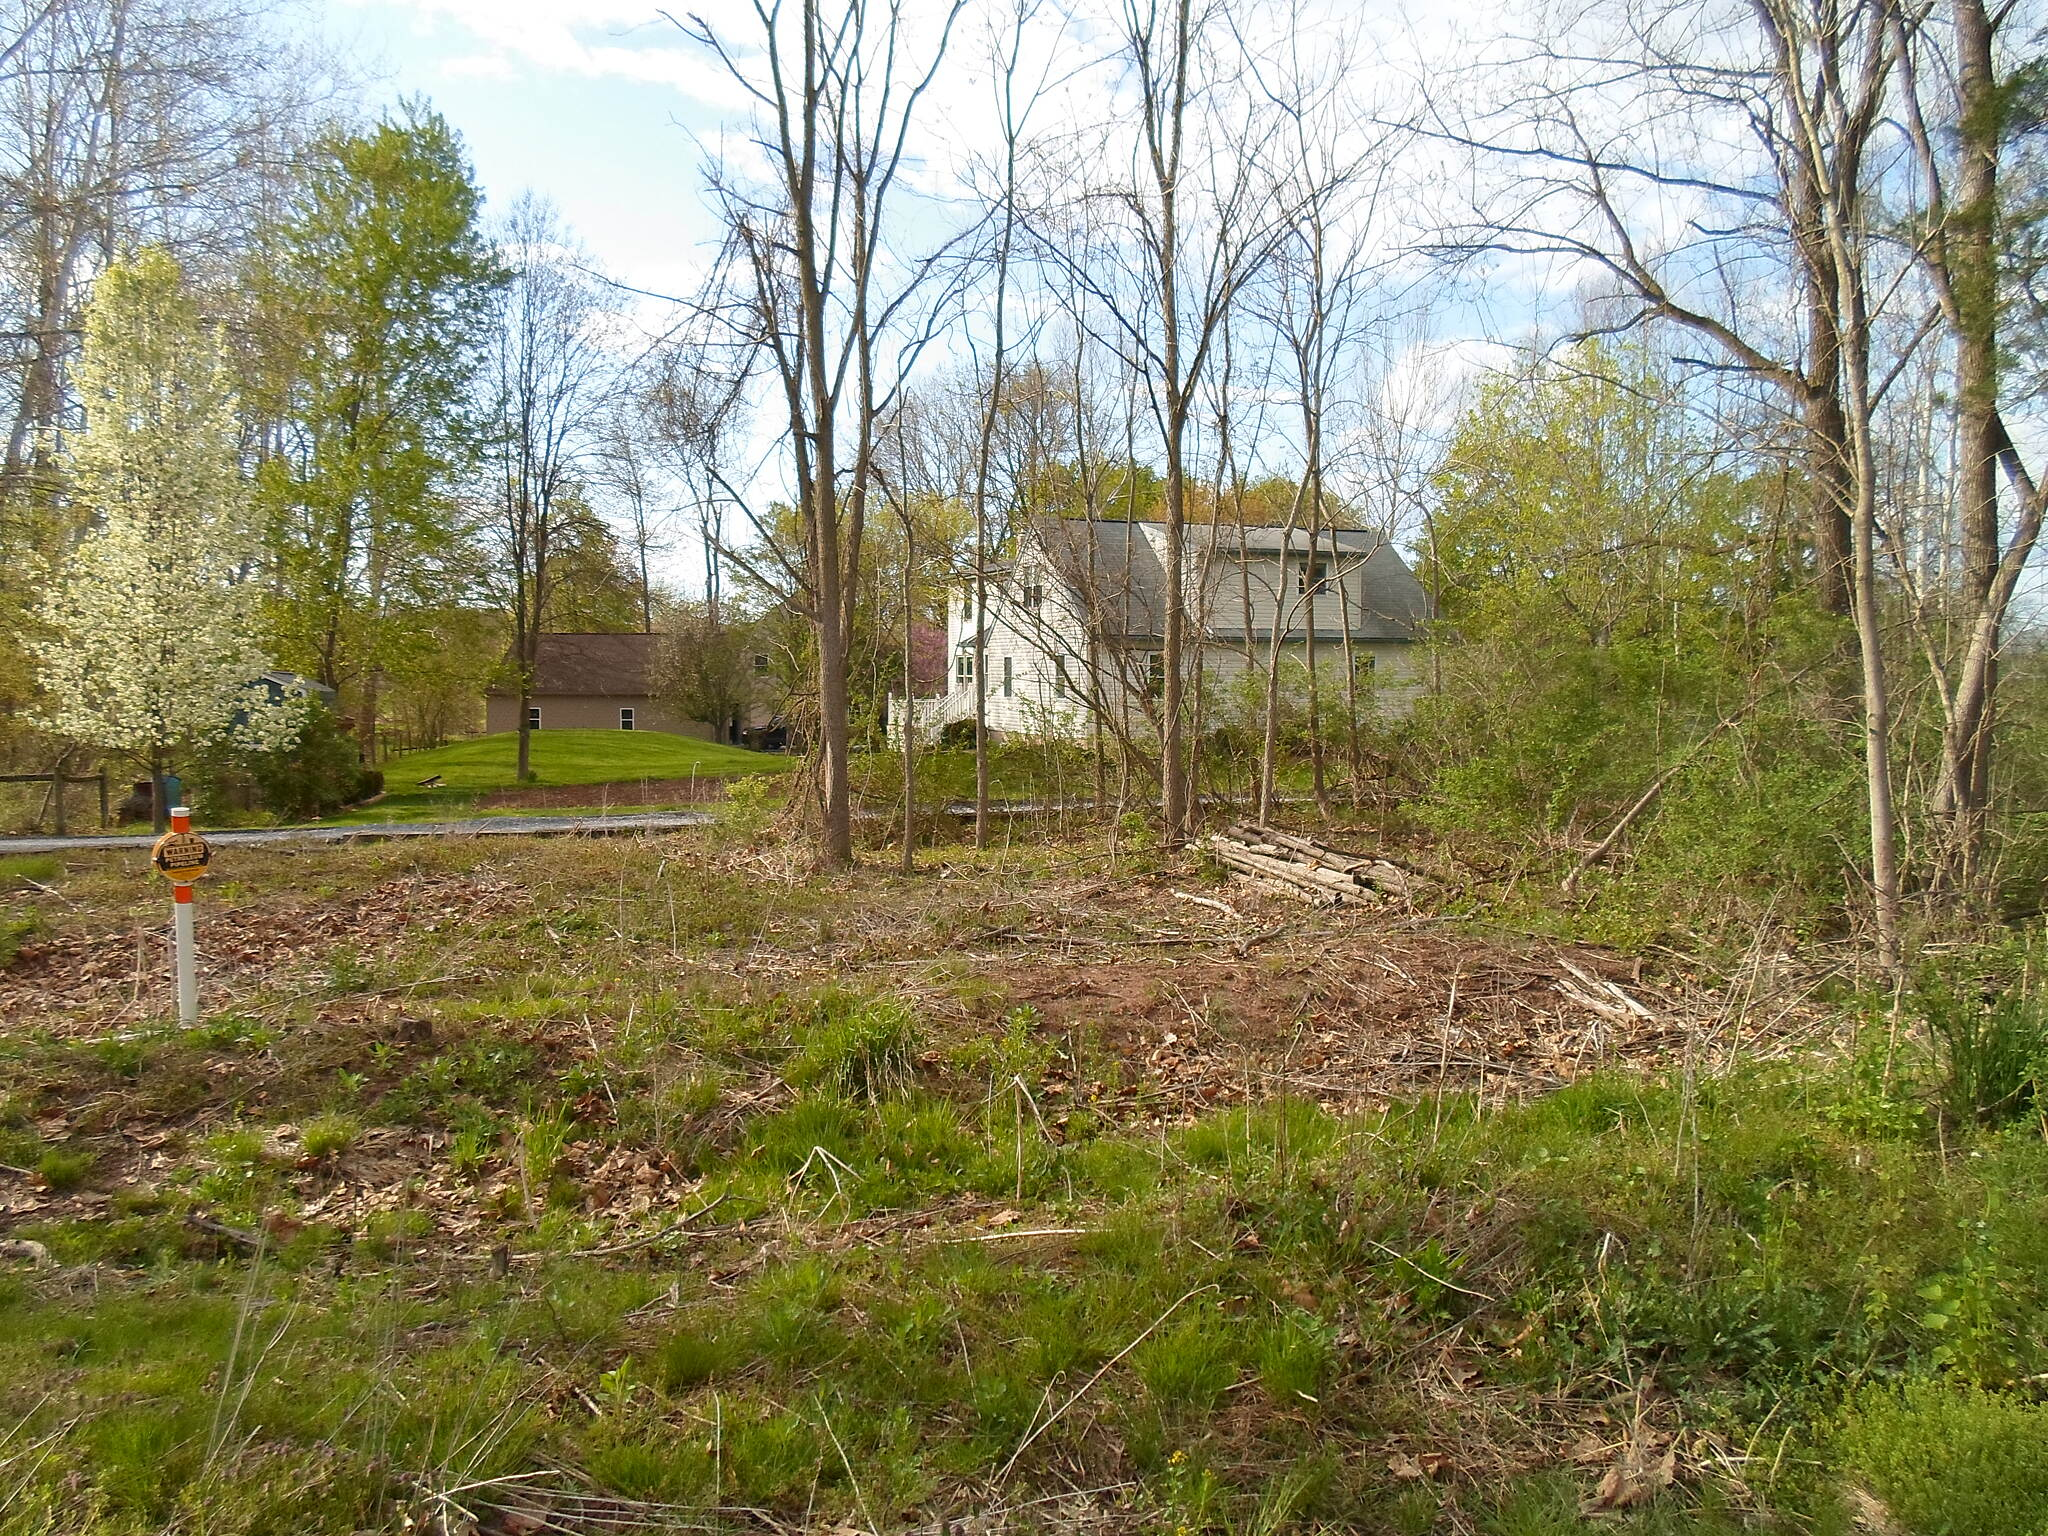 Conewago Recreation Trail Conewago Recreation Trail Homes off the trail near Old Hershey Road.